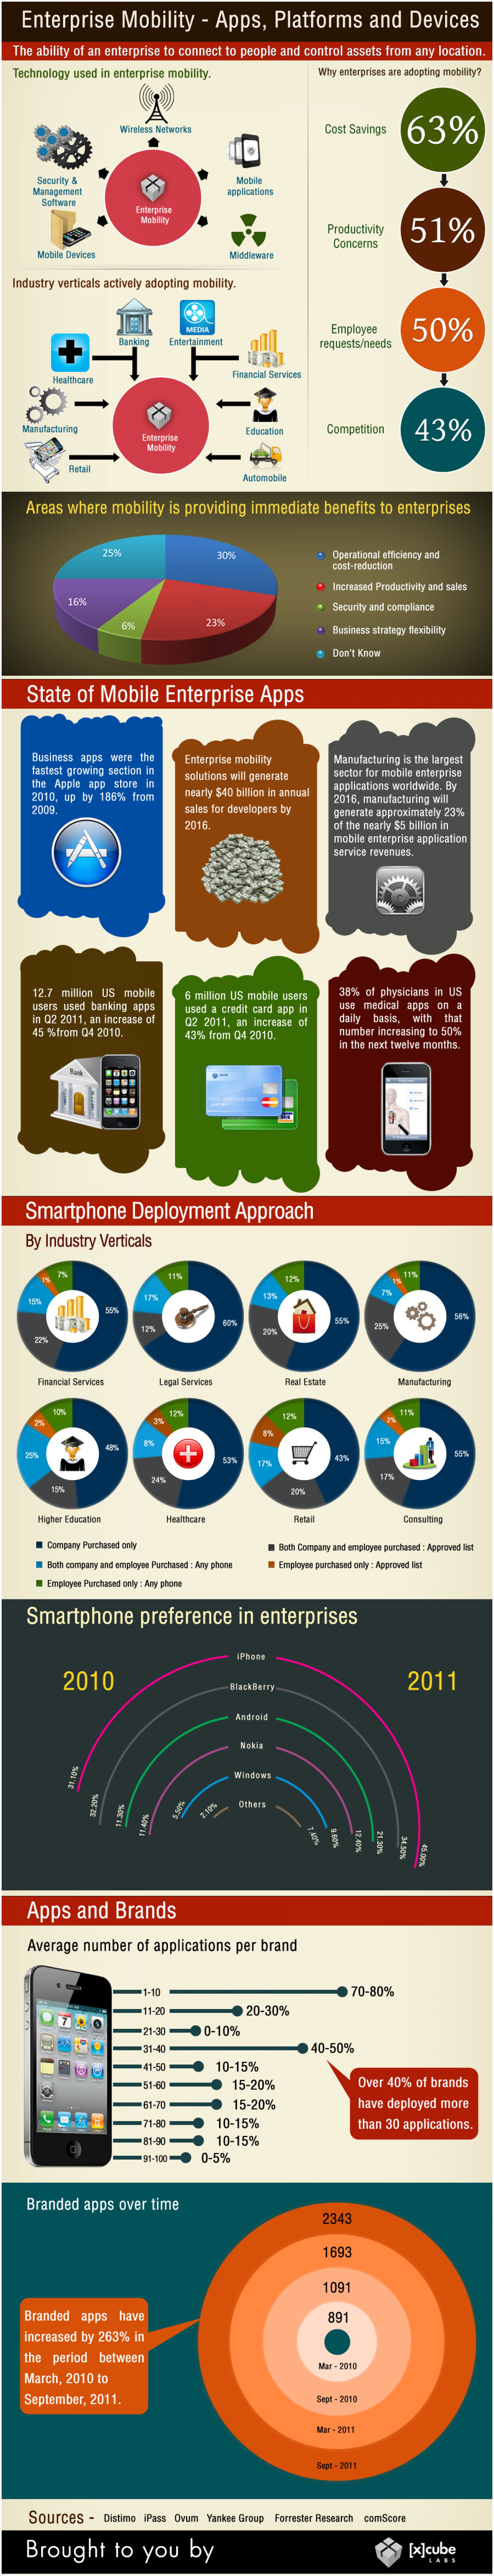 Infographic on Enterprise Mobility – Apps, Platforms and Devices Infographic